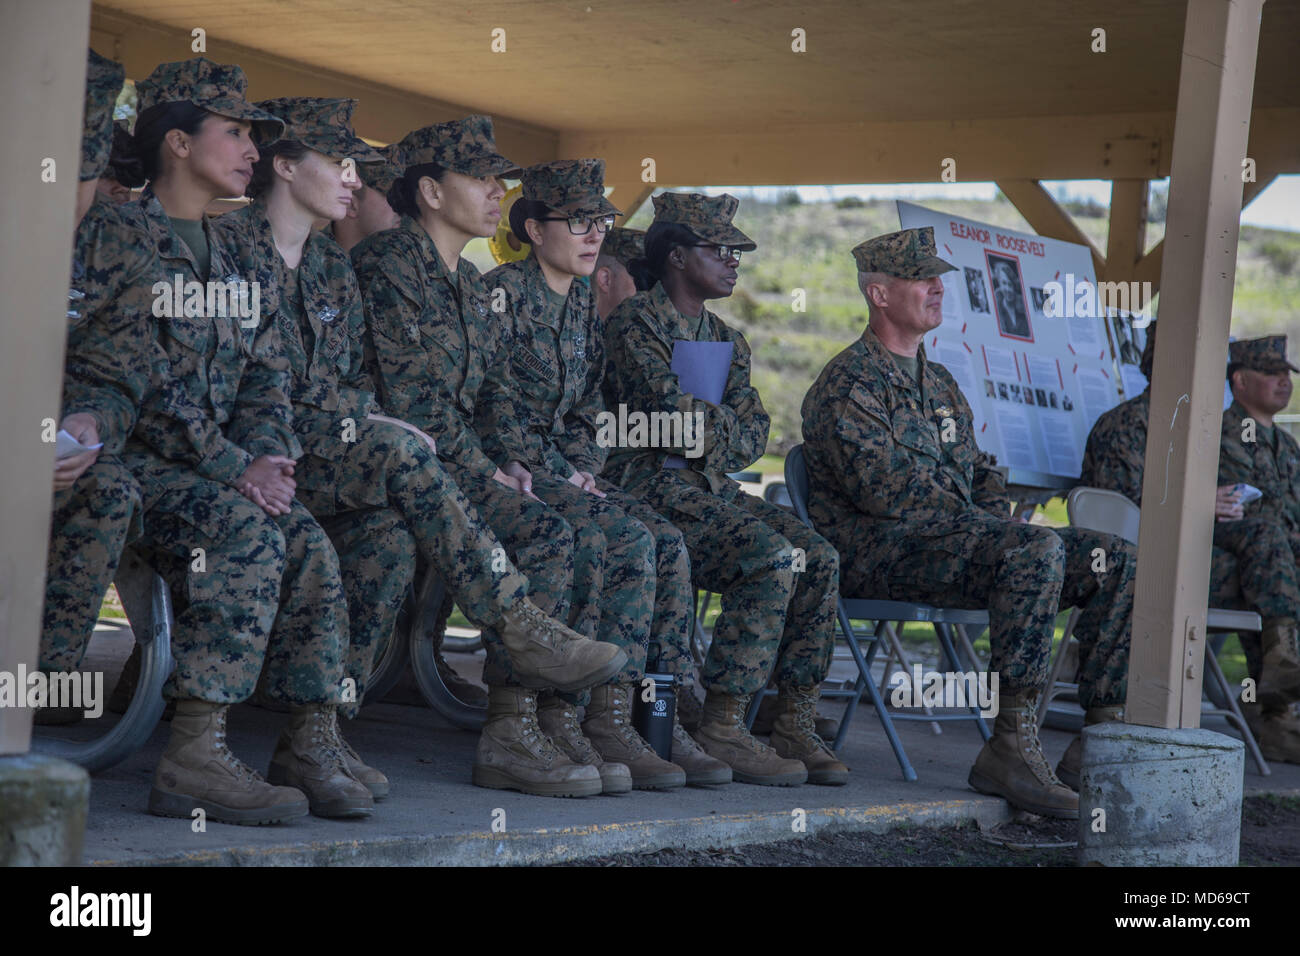 U.S. Sailors with 1st Medical Battalion, 1st Marine Logistics Group, listen to retired Marine Maj. Kathleen Ables about her experiences in the military as a woman during the Womens History Month Celebration event at Camp Pendleton, Calif., March 27, 2018. During the speech, she spoke about the challenges faced by woman in the military during the mid 1900's. (U.S. Marine Corps photo by Pfc. Timothy Shoemaker) - Stock Image